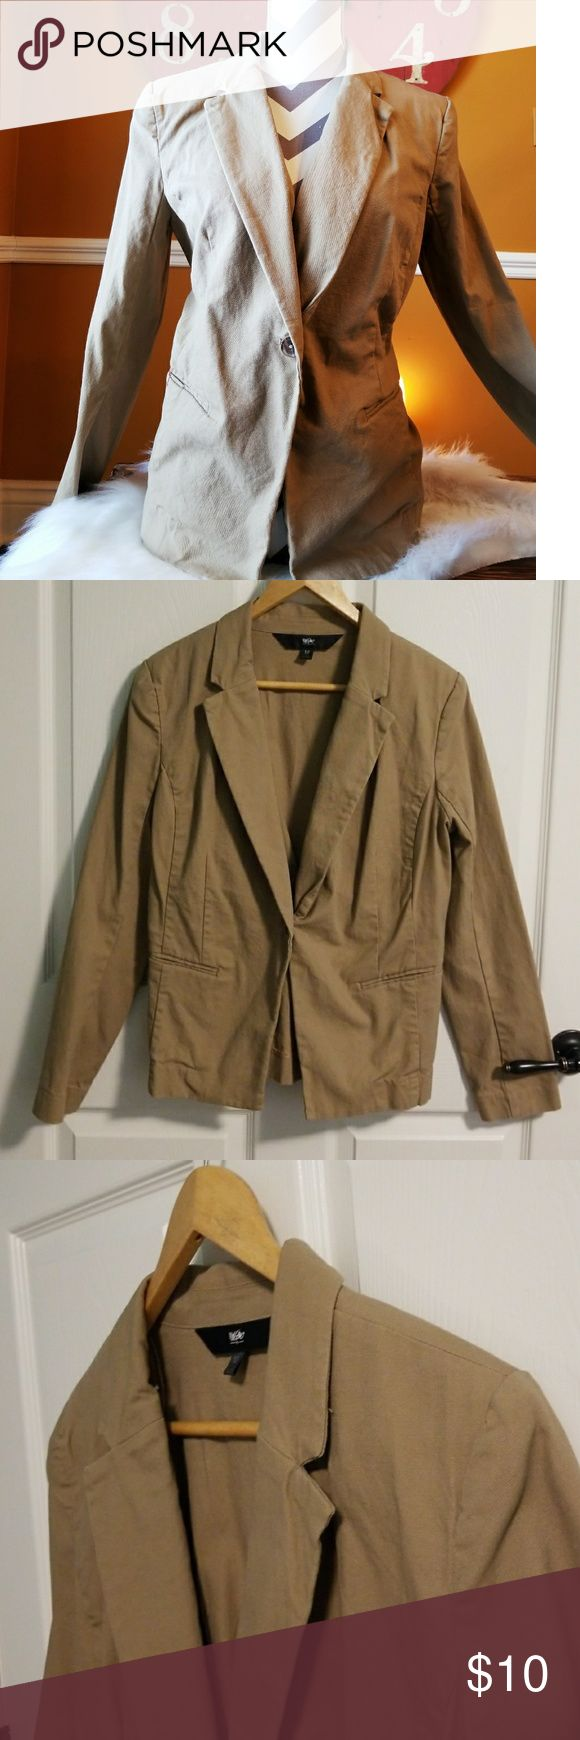 """Mossimo Traditional Khaki Blazer Size 12 Traditional Khaki Blazer in good condition. Single button to close.  Pit to pit is roughly 20"""" 97% cotton/ 3% spandex Mossimo Supply Co. Jackets & Coats Blazers"""